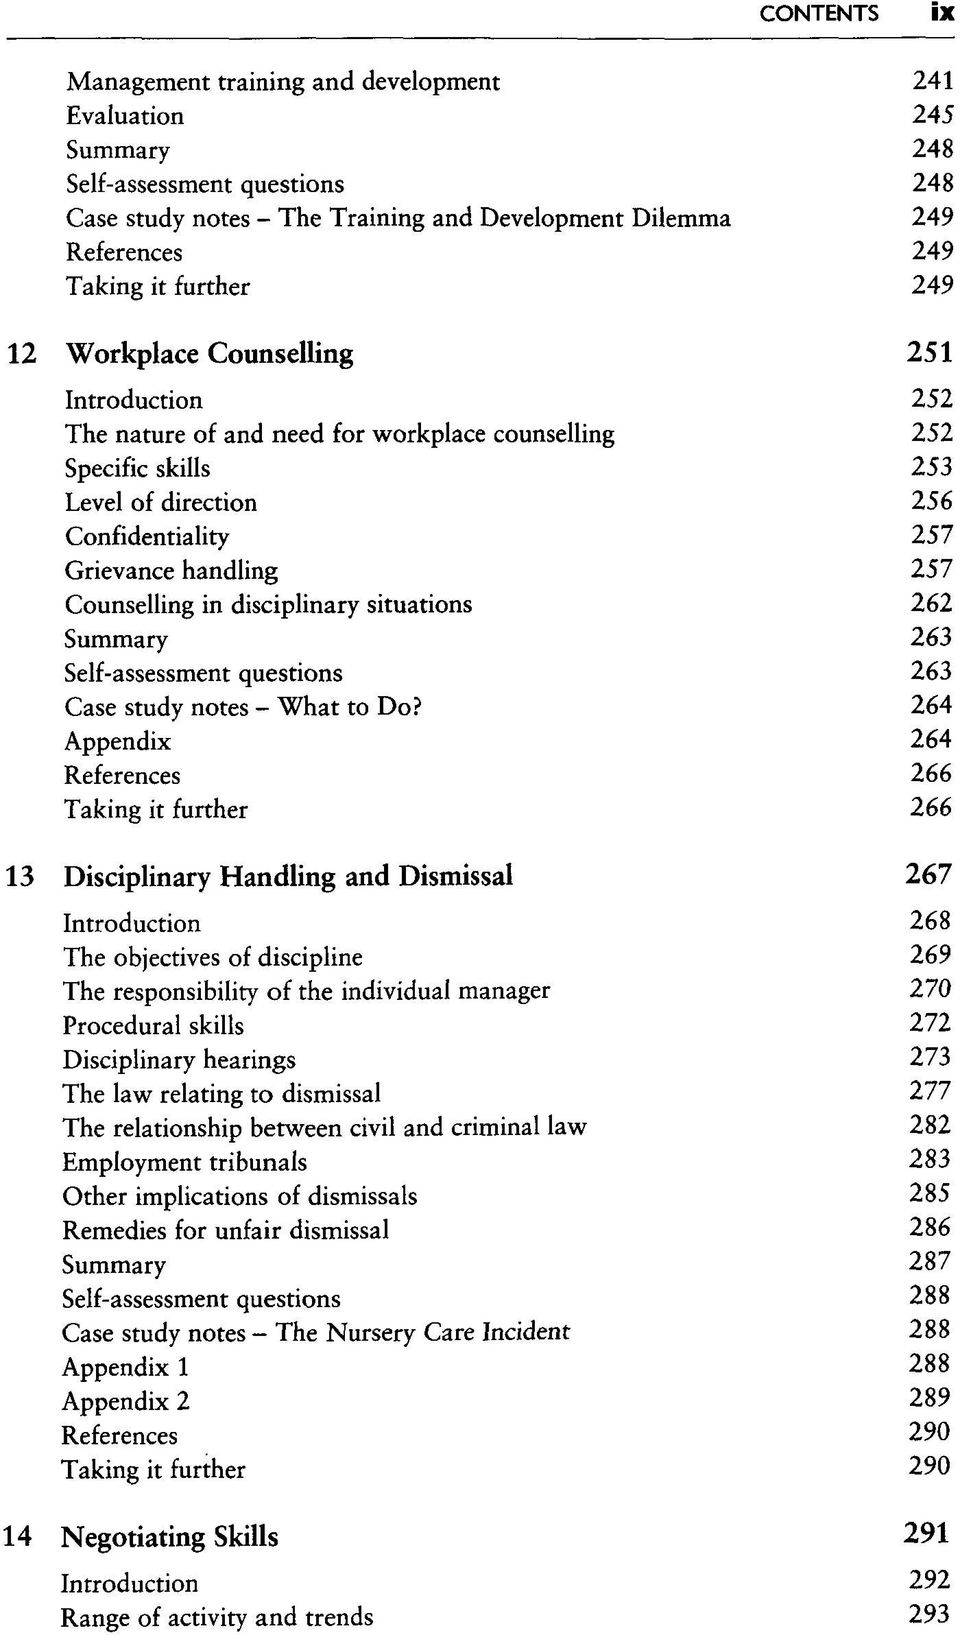 Counselling in disciplinary situations 262 Summary 263 Self-assessment questions 263 Gase study notes - What to Do?